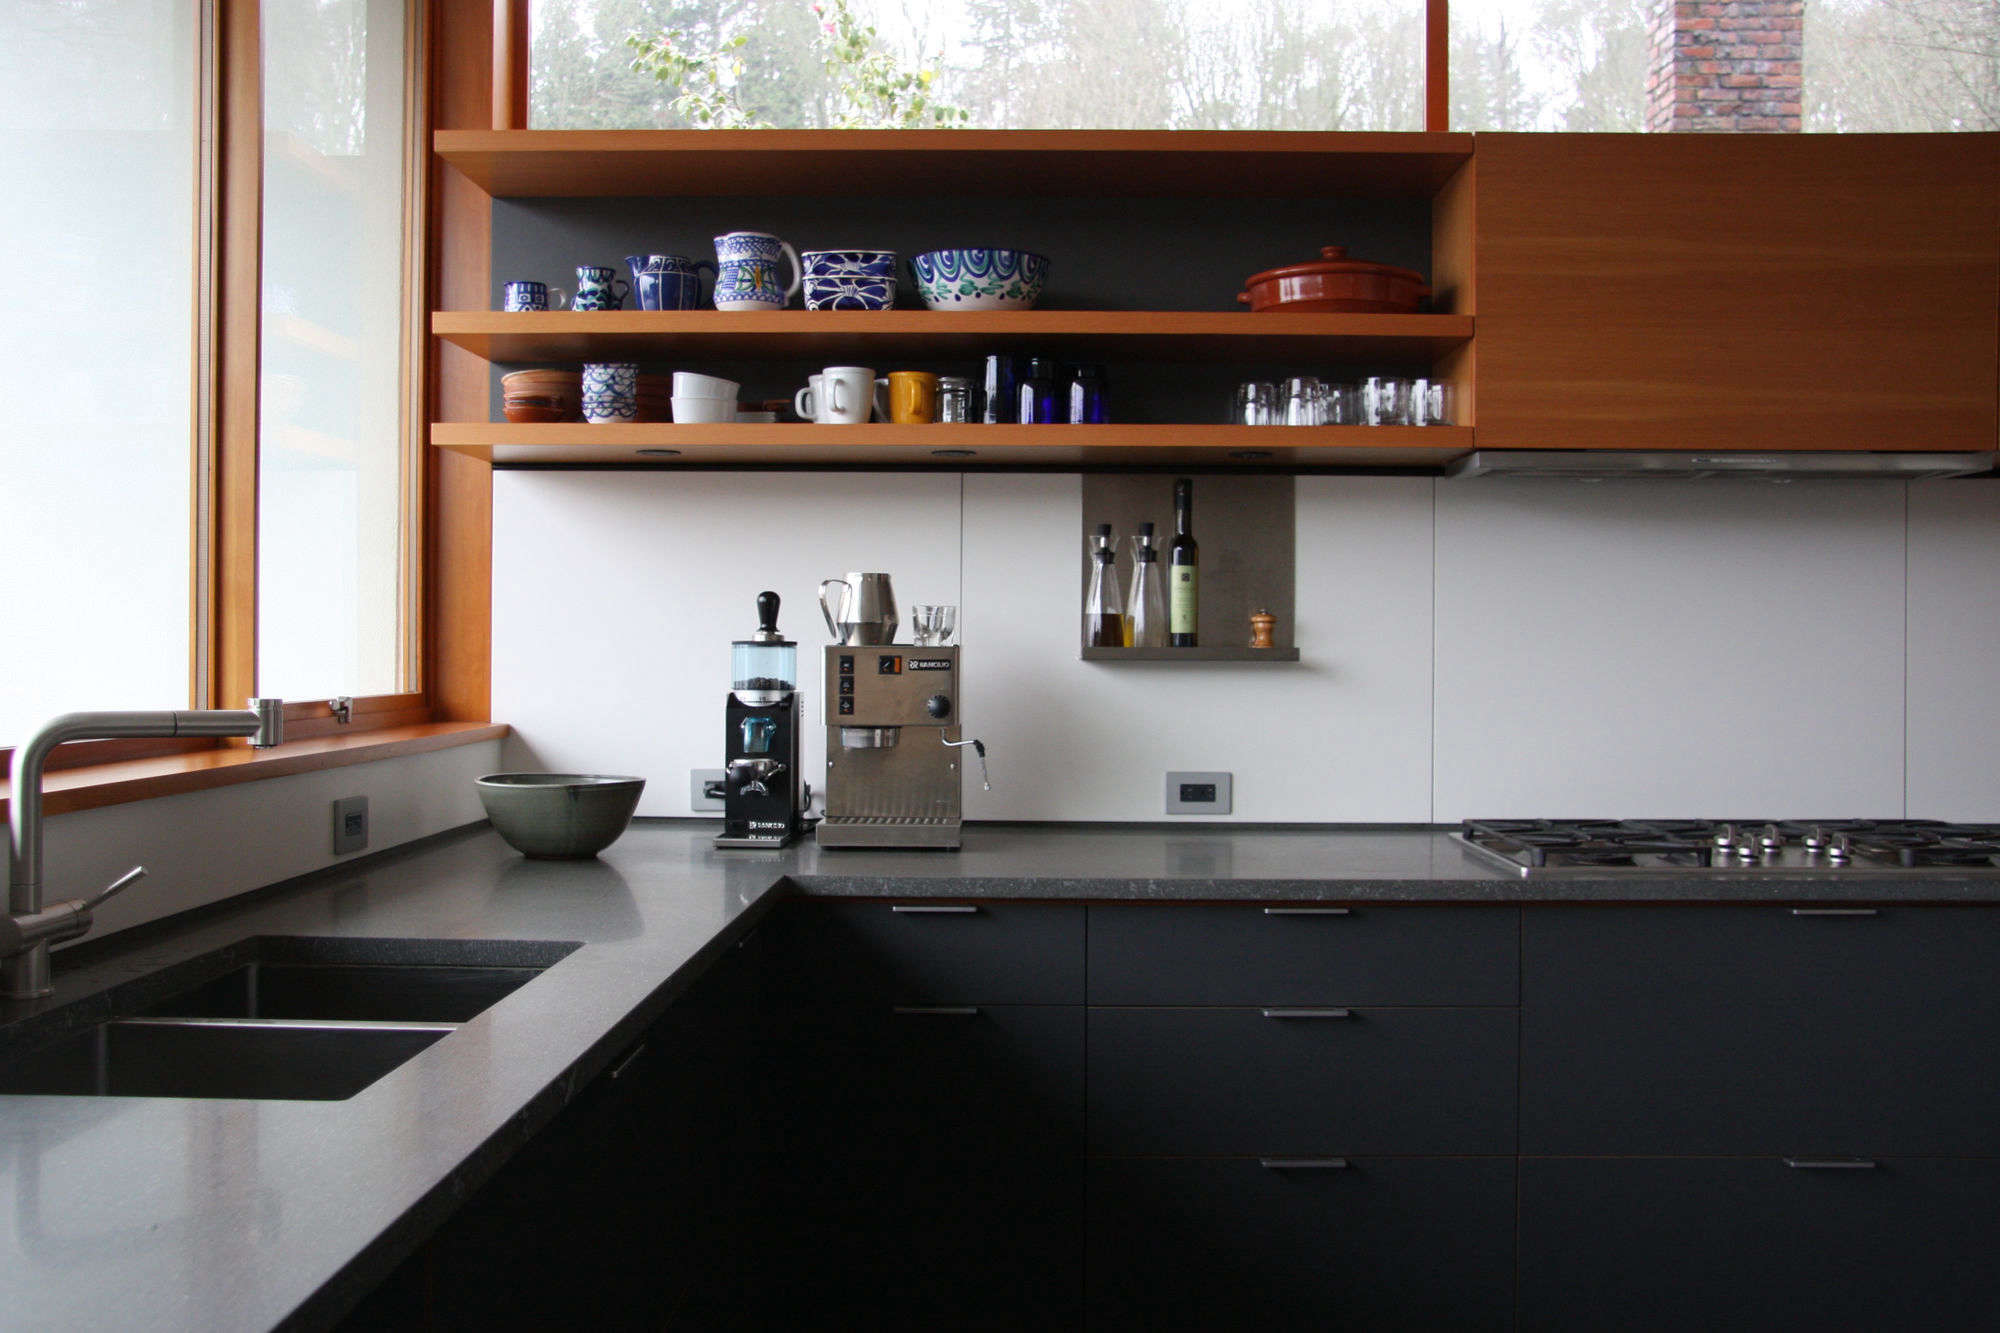 remodeling soapstone kitchen countertop pros and cons soapstone kitchen countertops